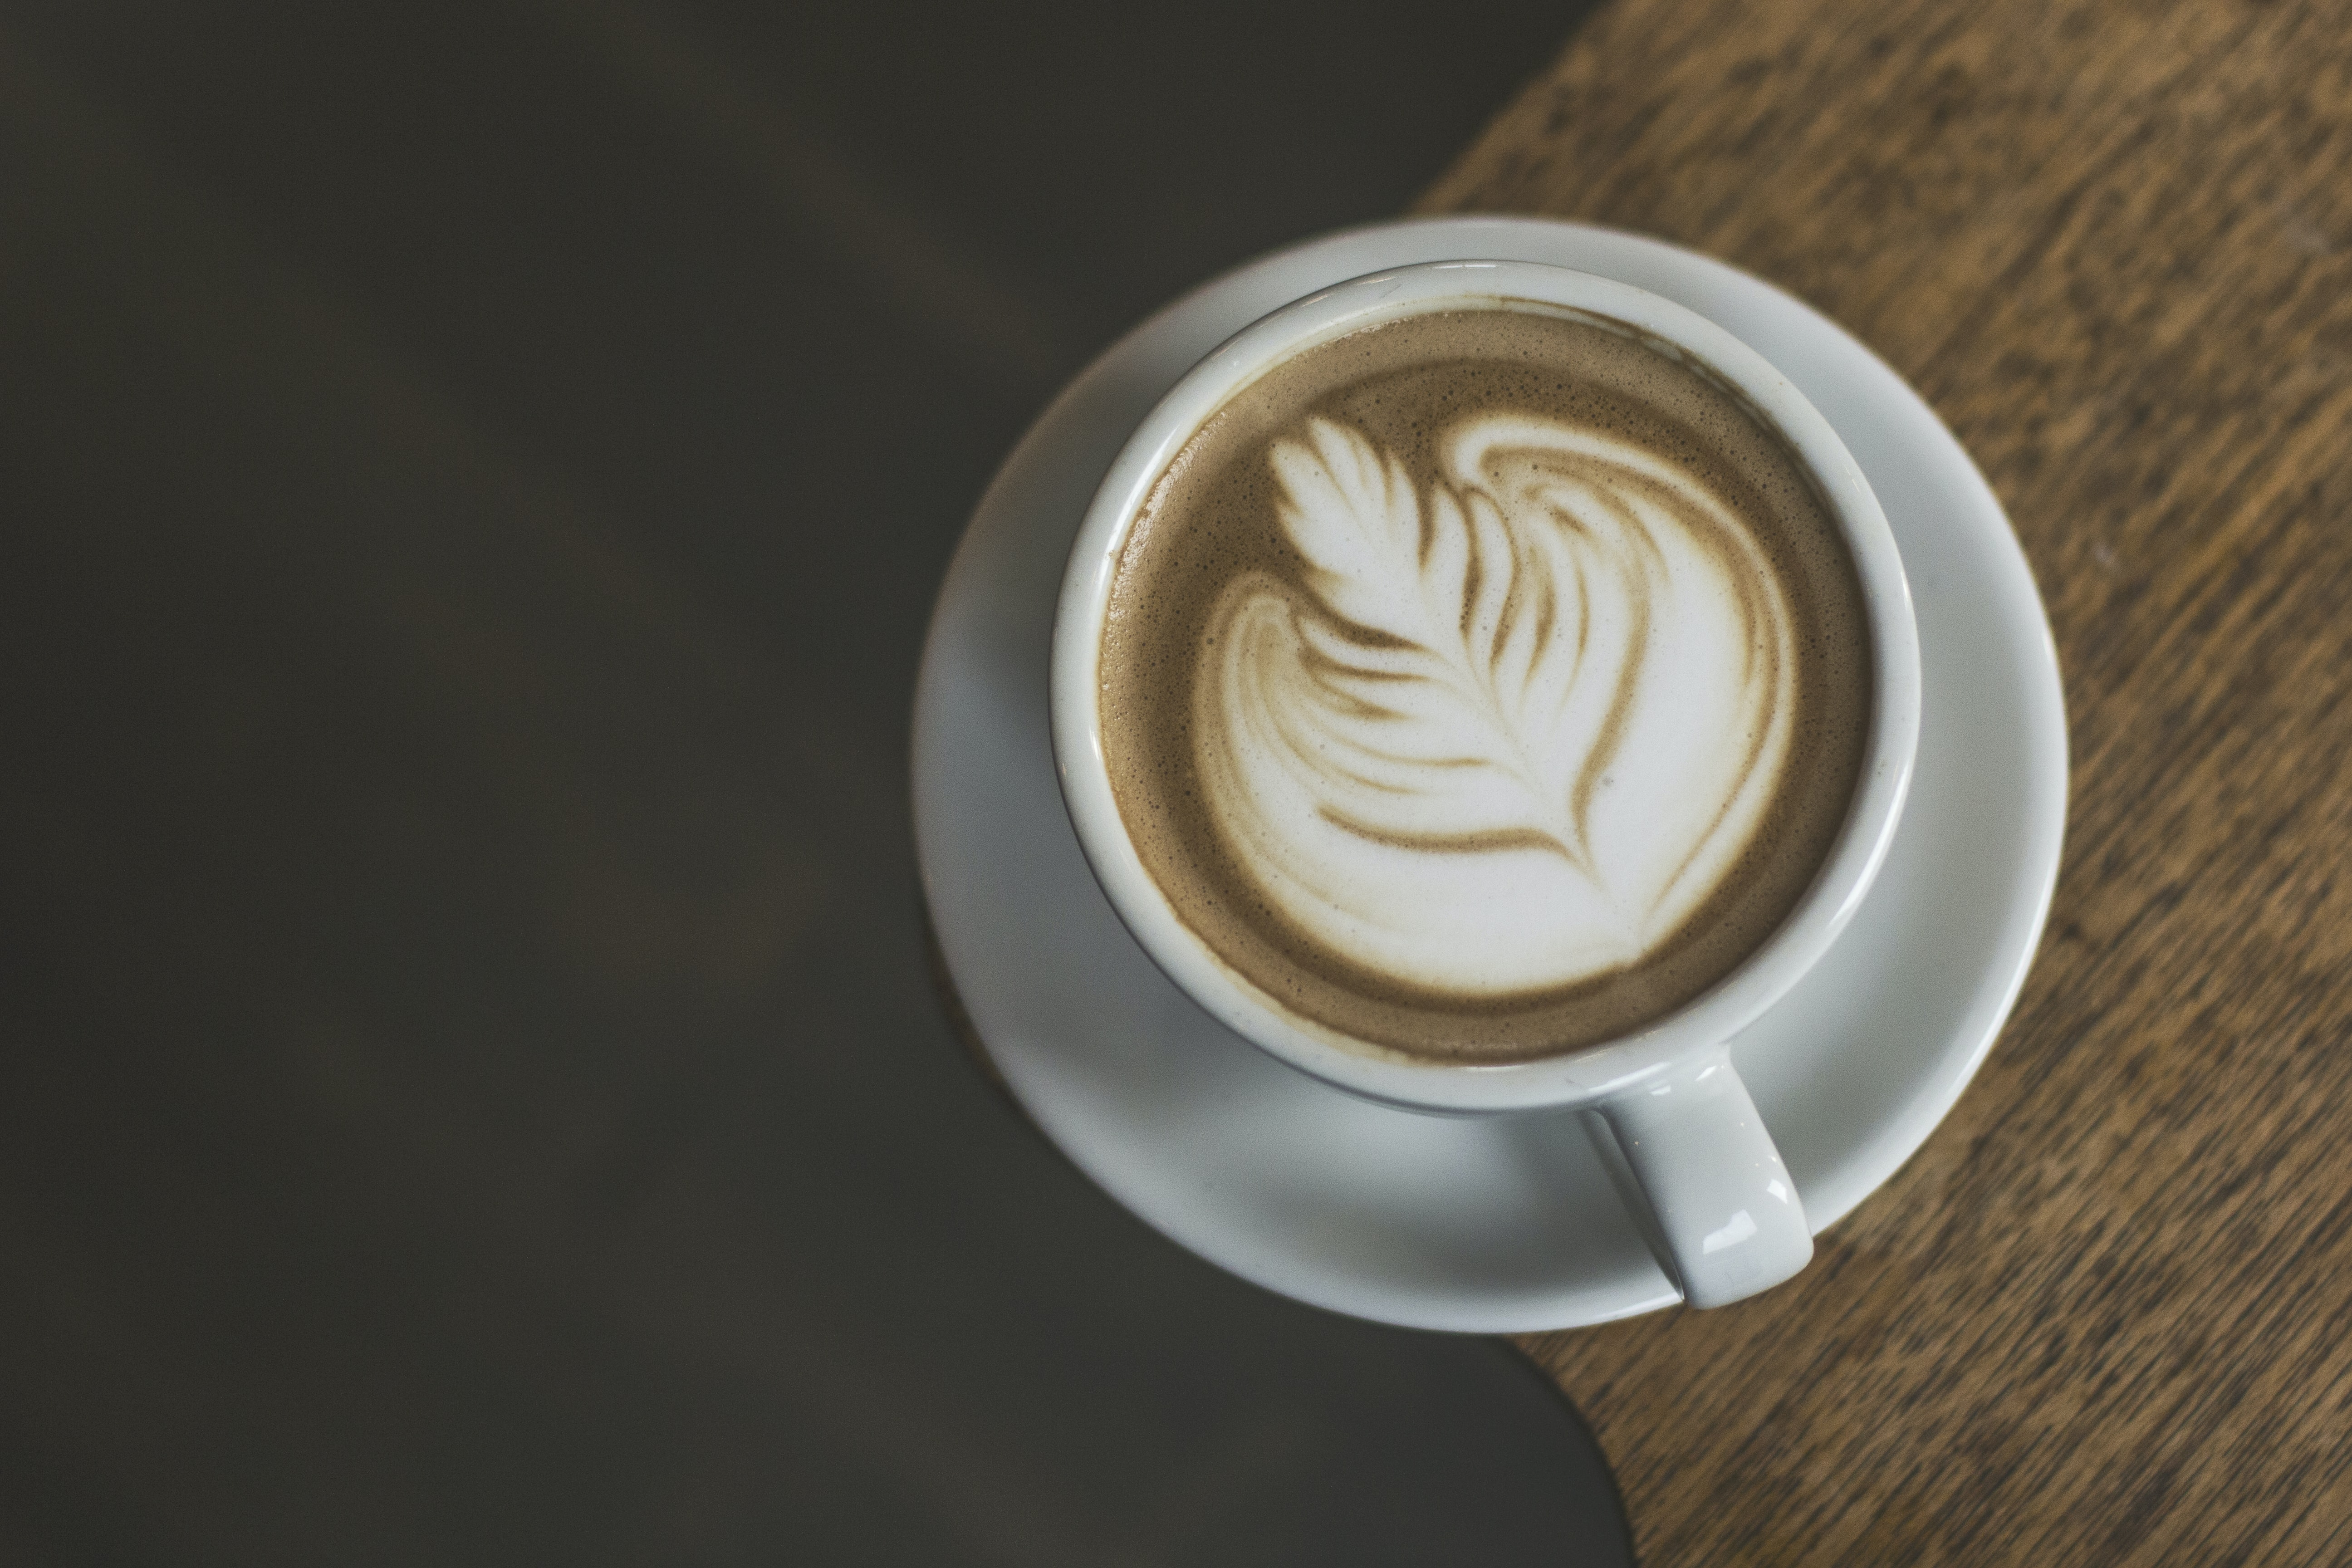 Latte with foam leaf-like art in a white coffee cup on a wooden table